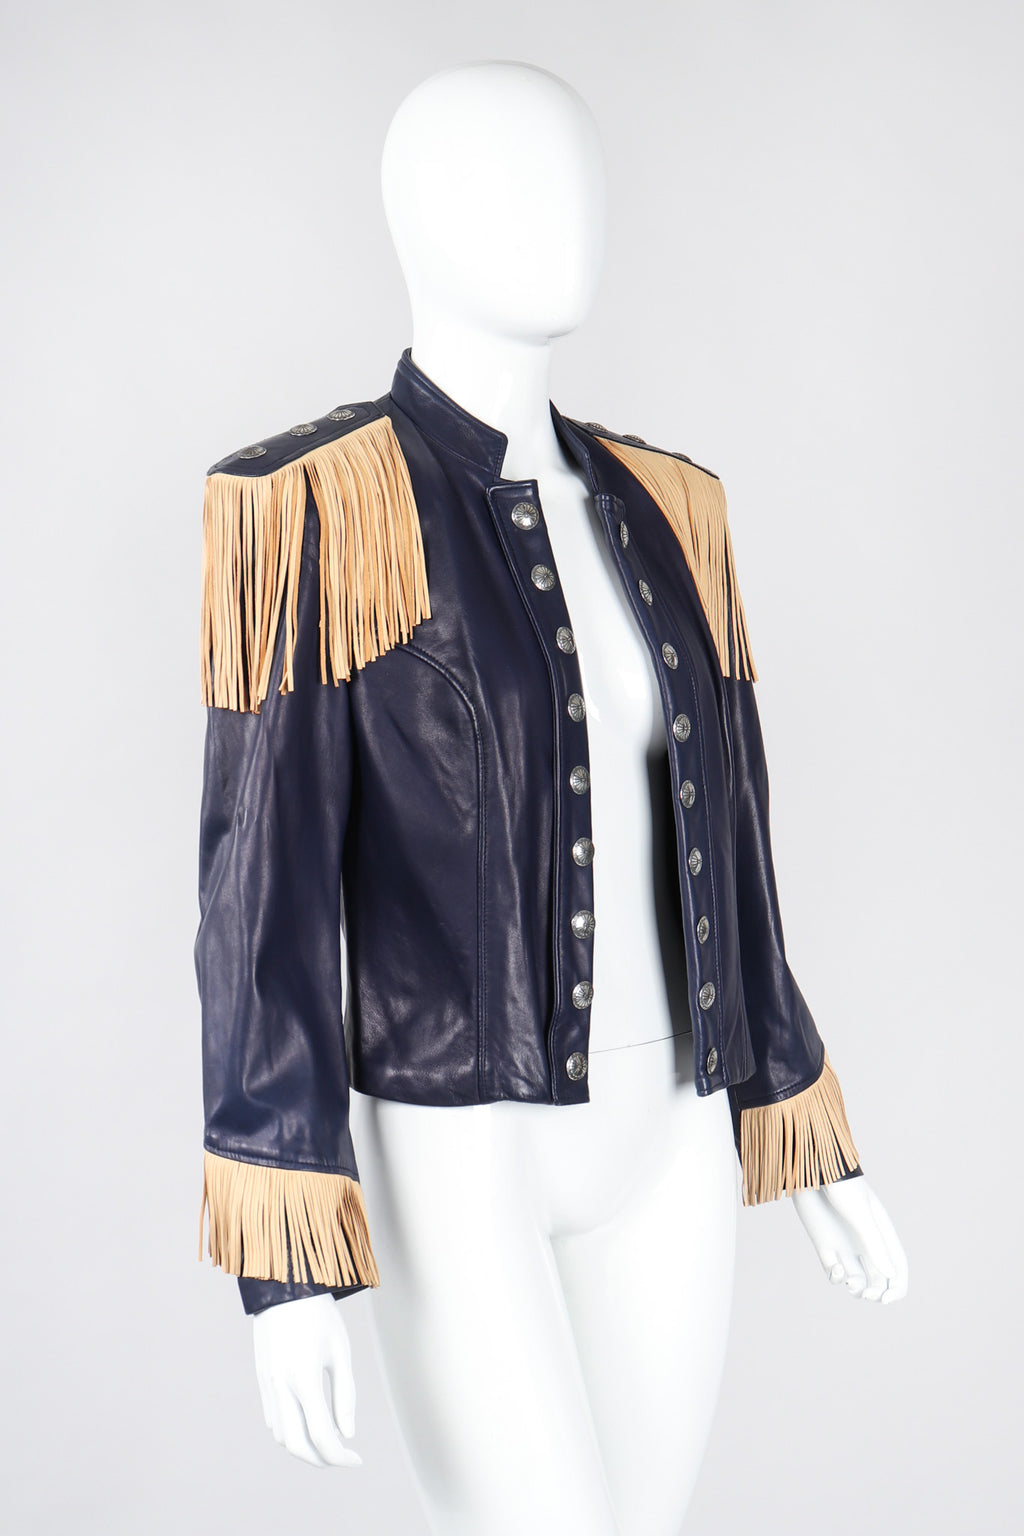 Recess Los Angeles Vintage Continental Fringed Epaulette Cavalry Leather Jacket